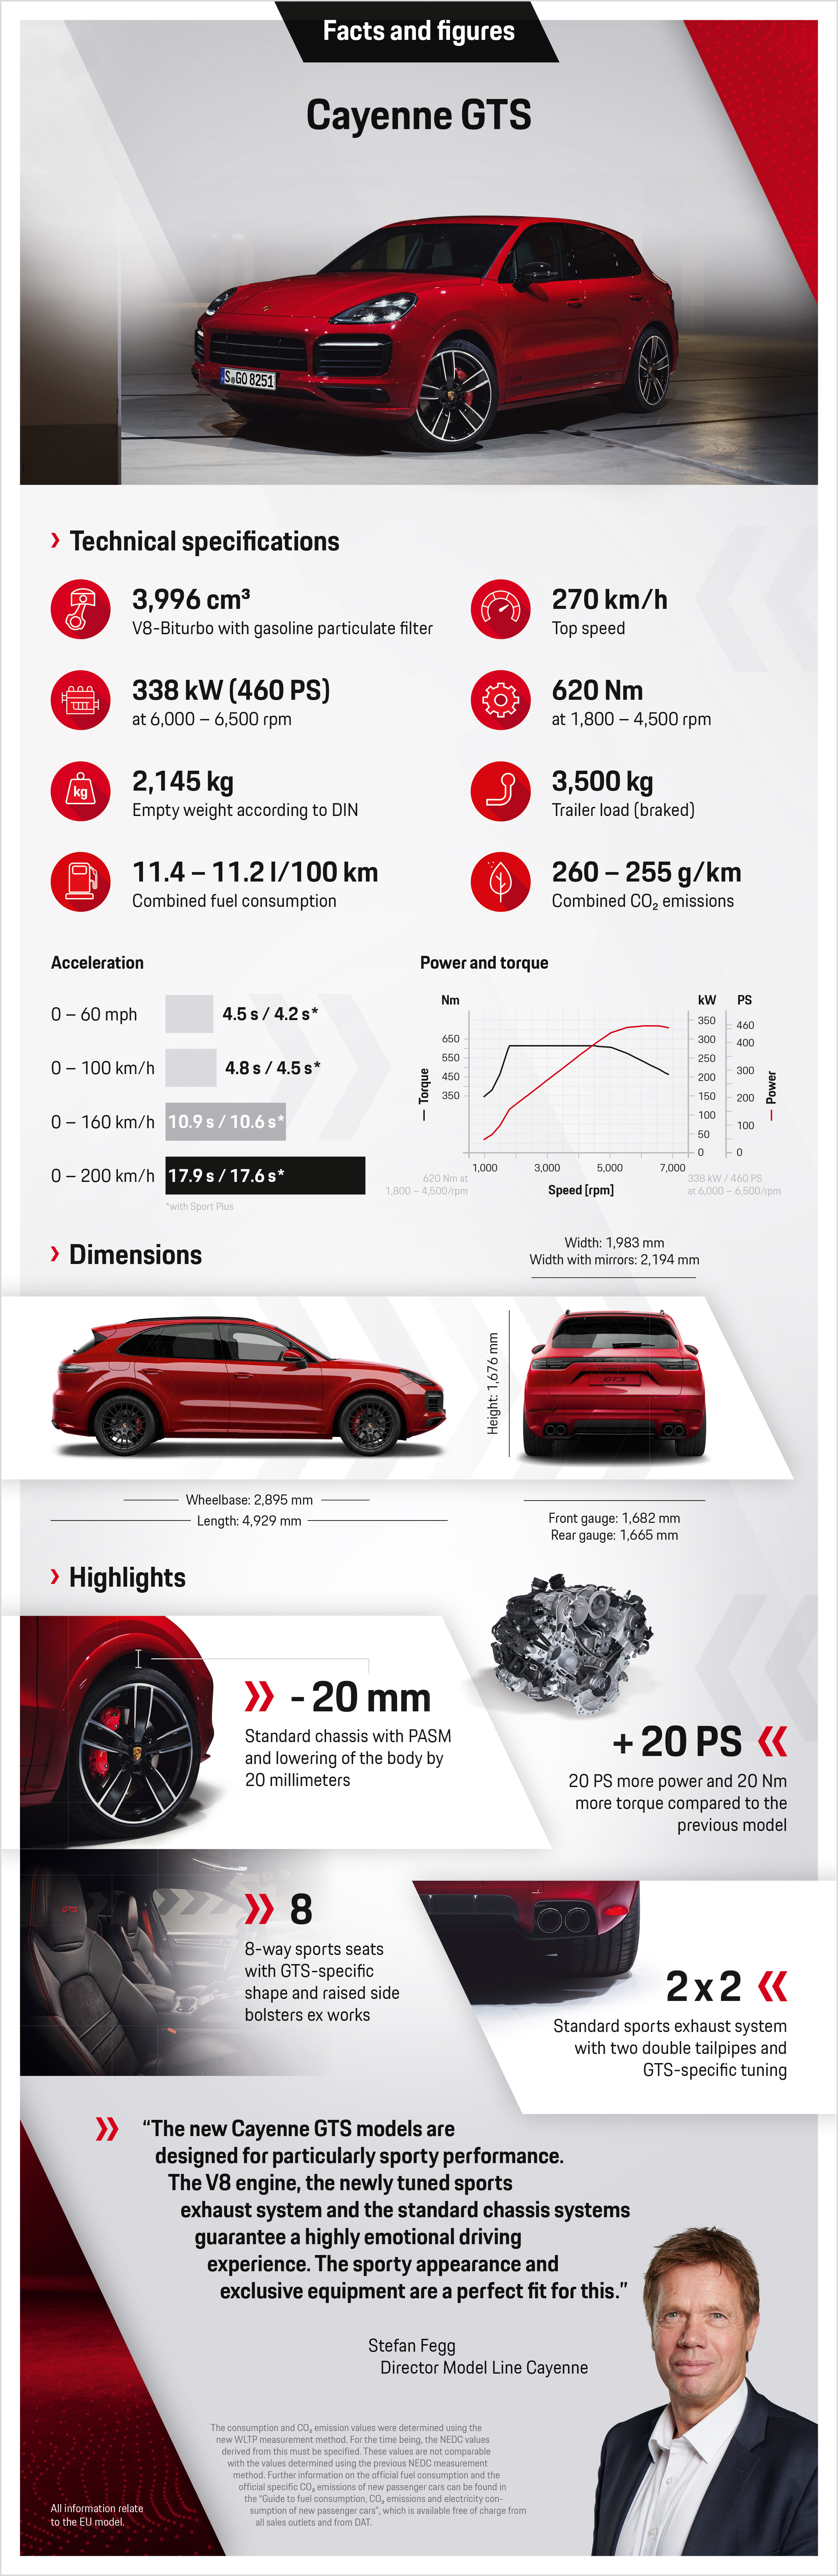 Suv Duo With Sporty Set Up The New Cayenne Gts Models